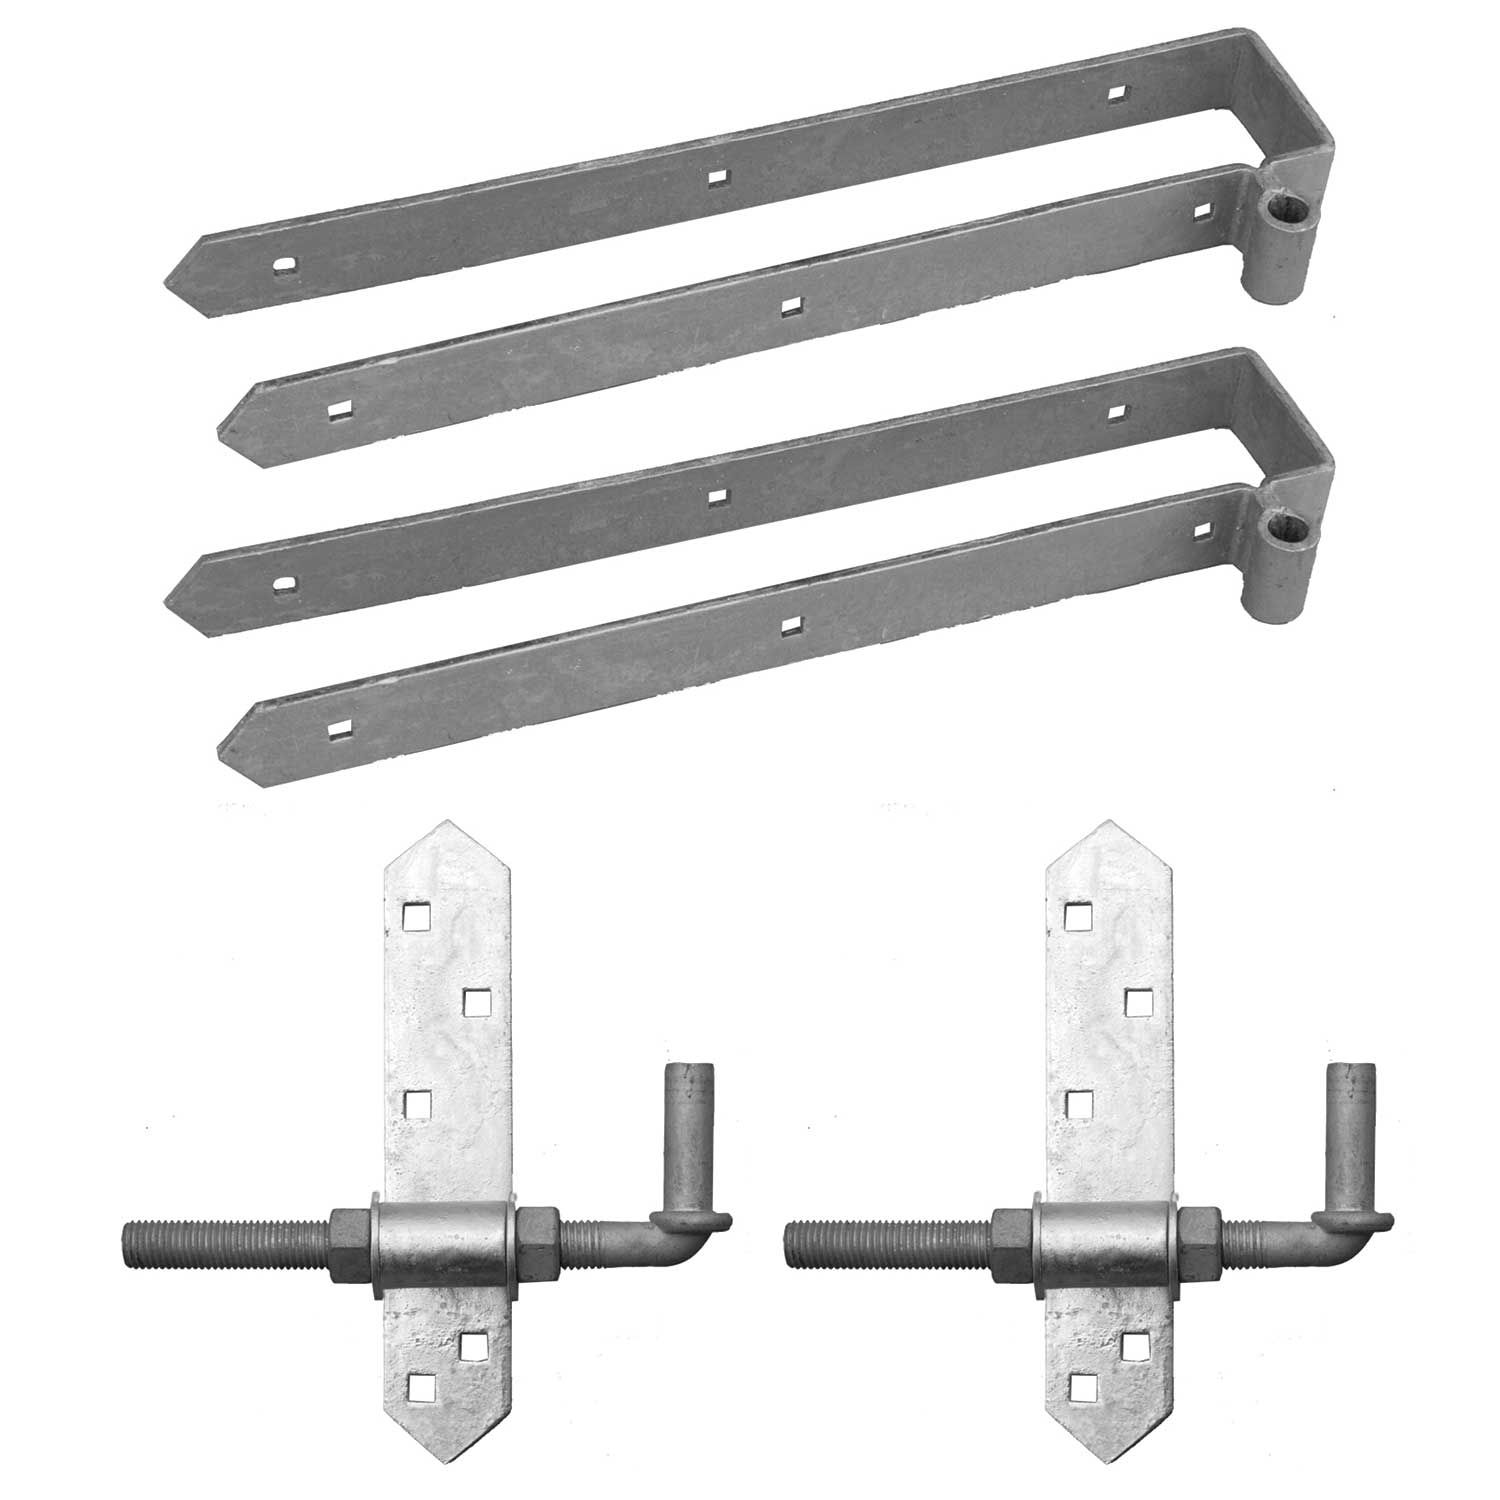 "Snug Cottage Hardware Heavy Duty Rear Eye Double Strap Hinge Hardware Sets - 3"" Thick Gates - Includes 8"" Adjustable Pins"